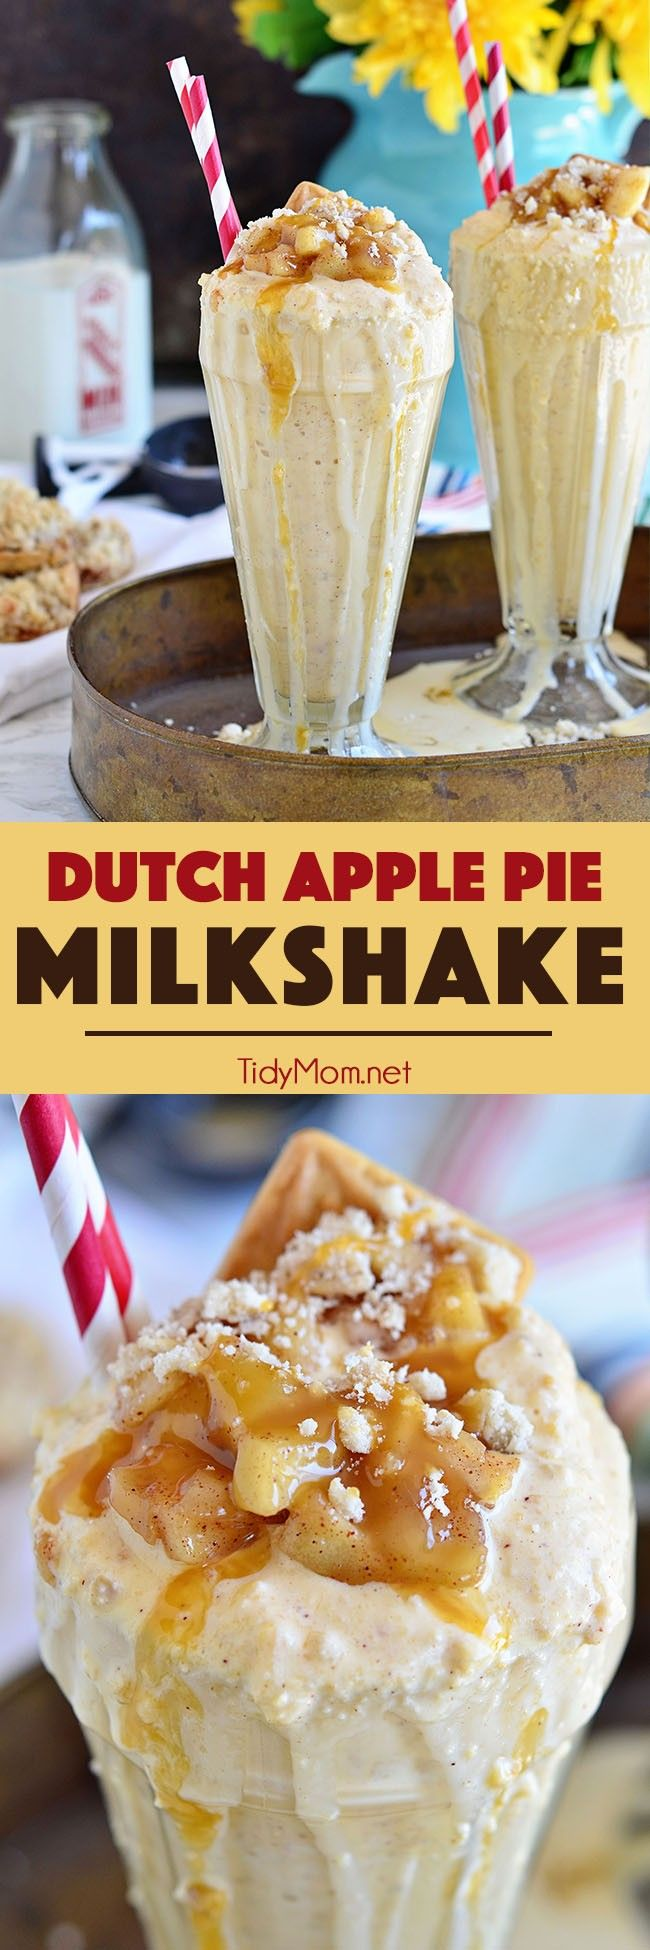 No plate and fork needed for this apple pie a la mode! A cool and creamy DUTCH APPLE PIE MILKSHAKE is the perfect blend of creamy vanilla ice cream, apple pie filling, and crumb topping. Recipe at Tidymom.net